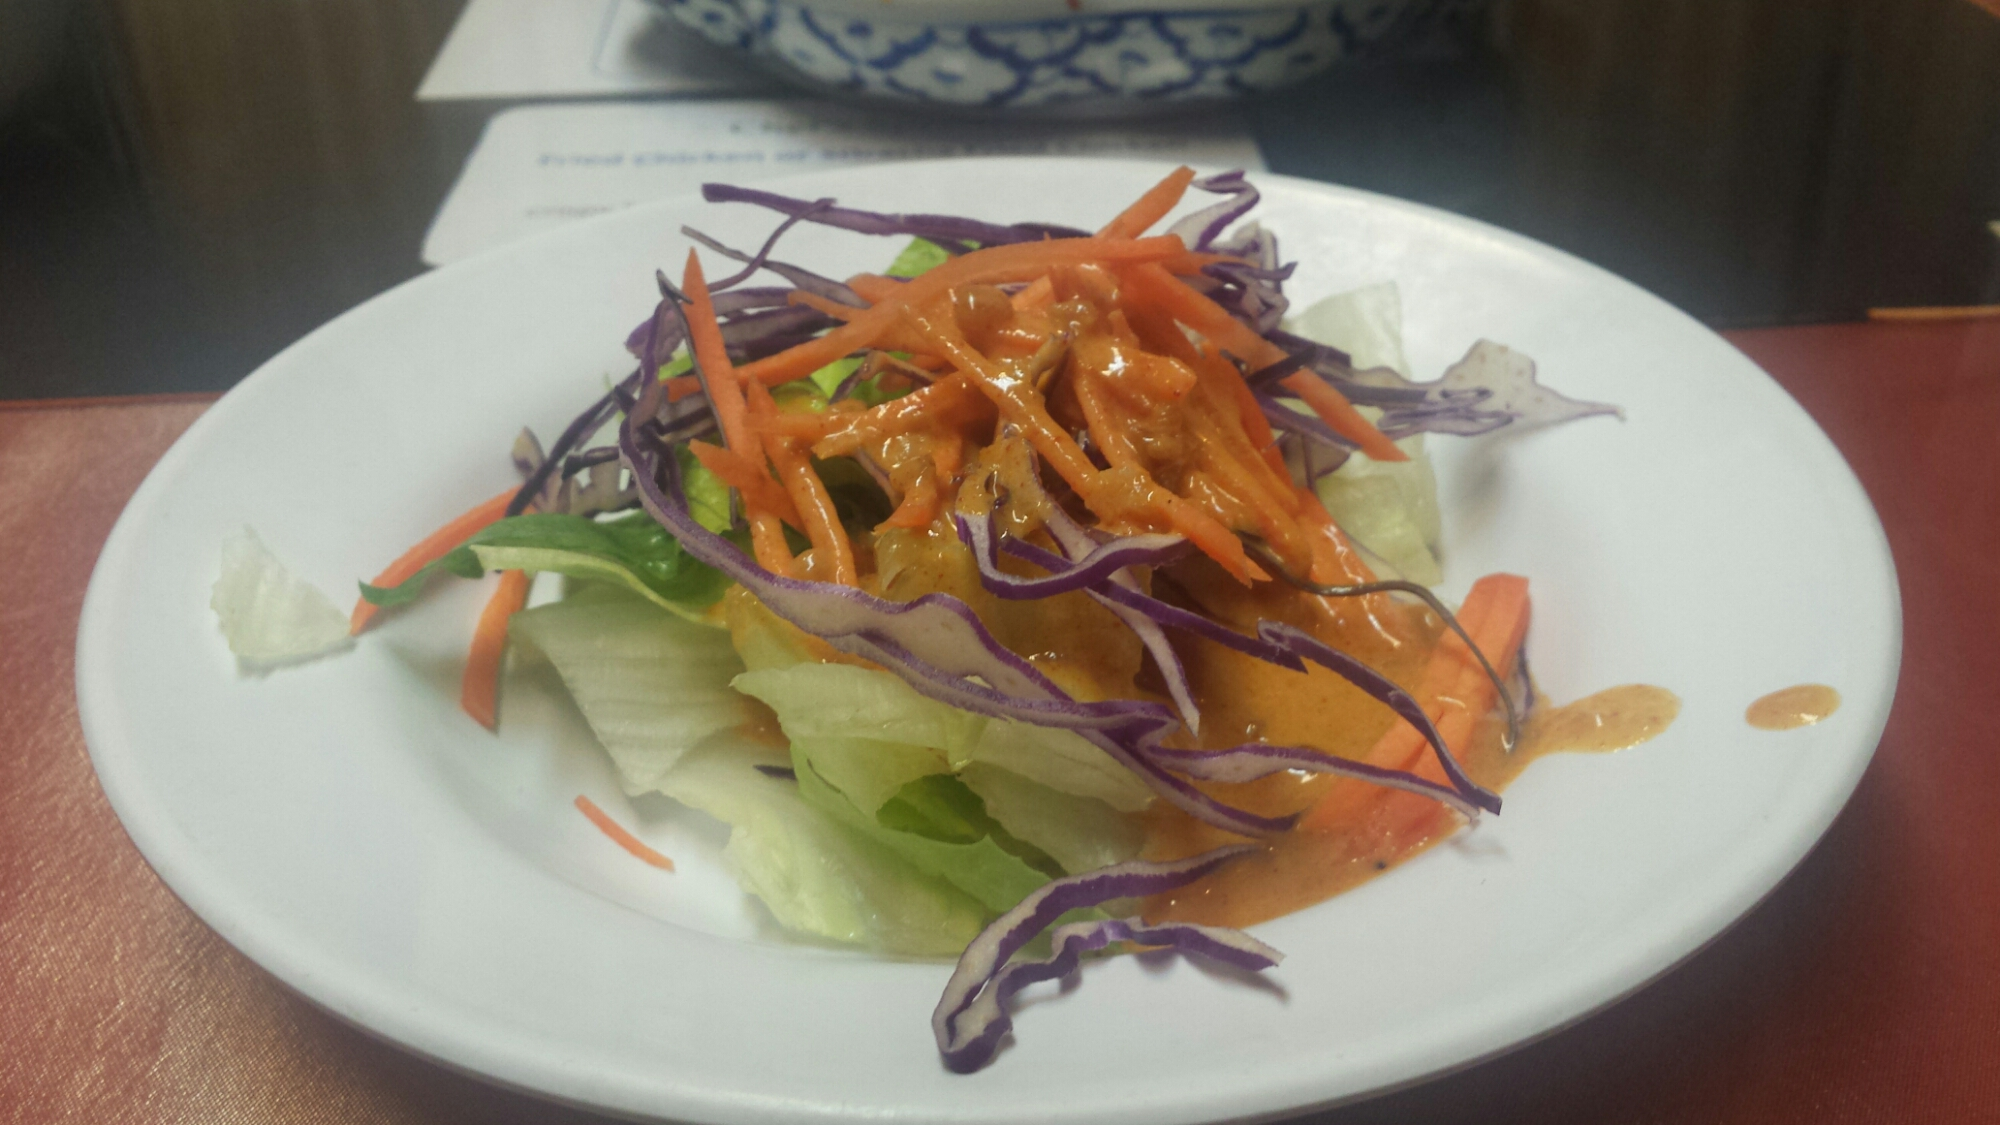 peanut sauce with shredded carrots, lettuce, and shredded cabbage